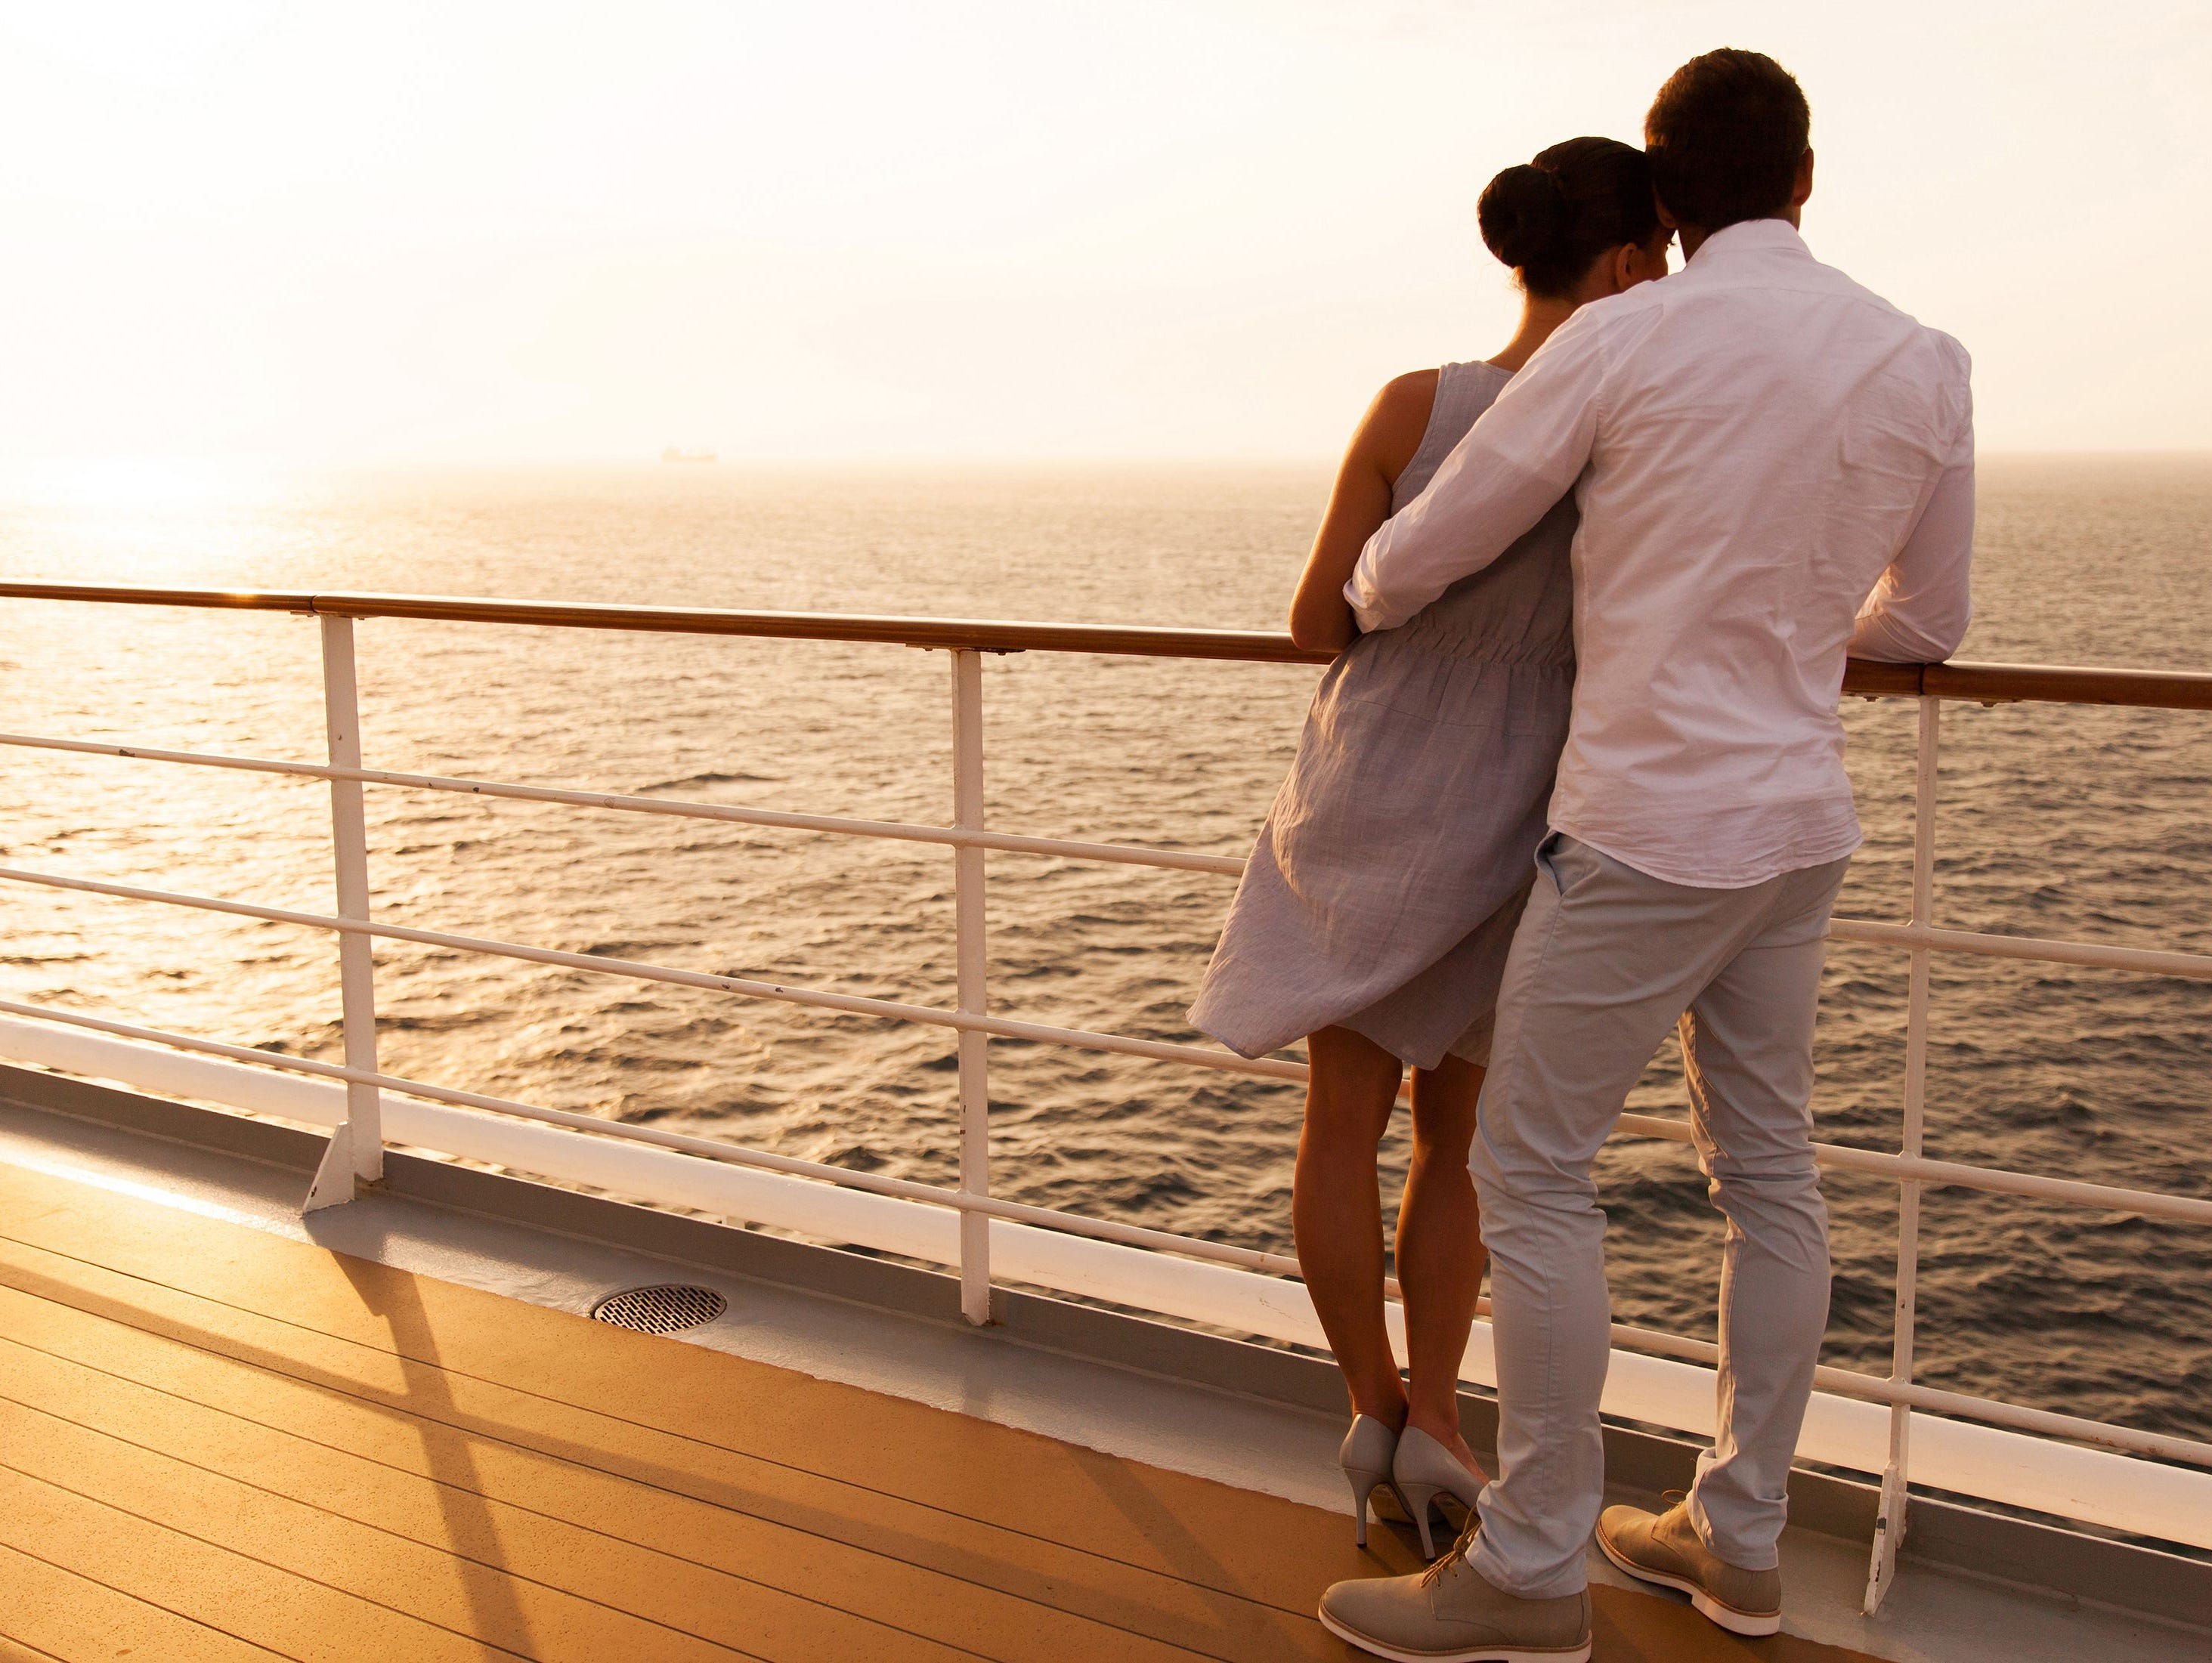 Enter hourly for a chance to win a $2000 gift certificate on a major cruise line! Enter 7/13-8/10.